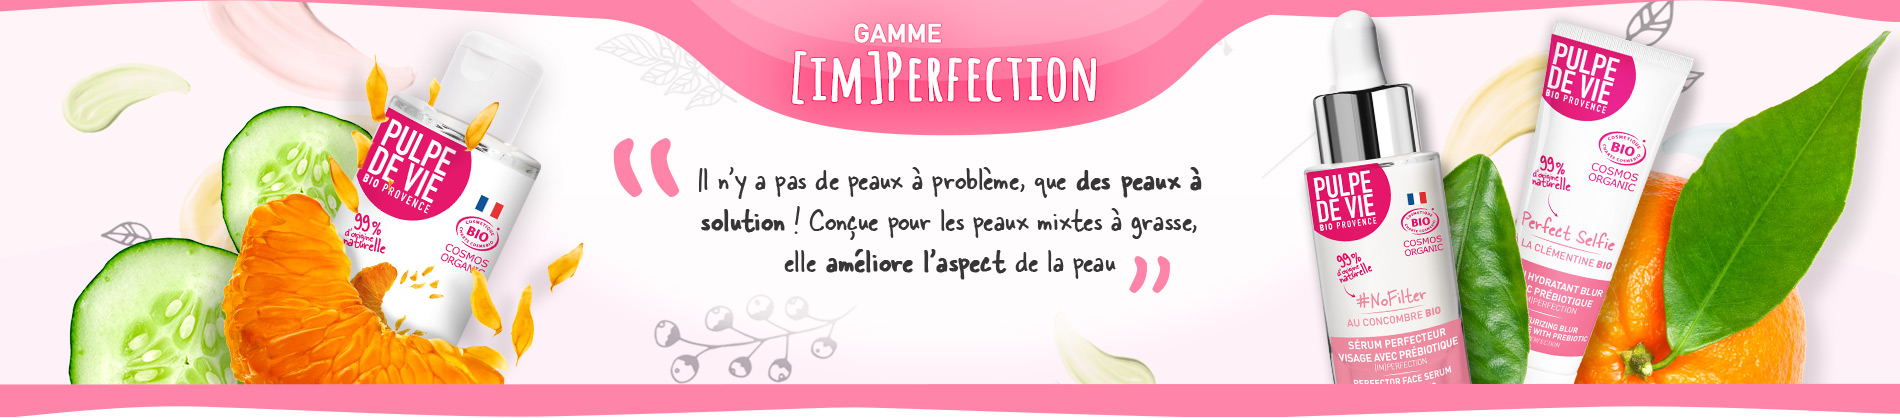 Gamme imperfection